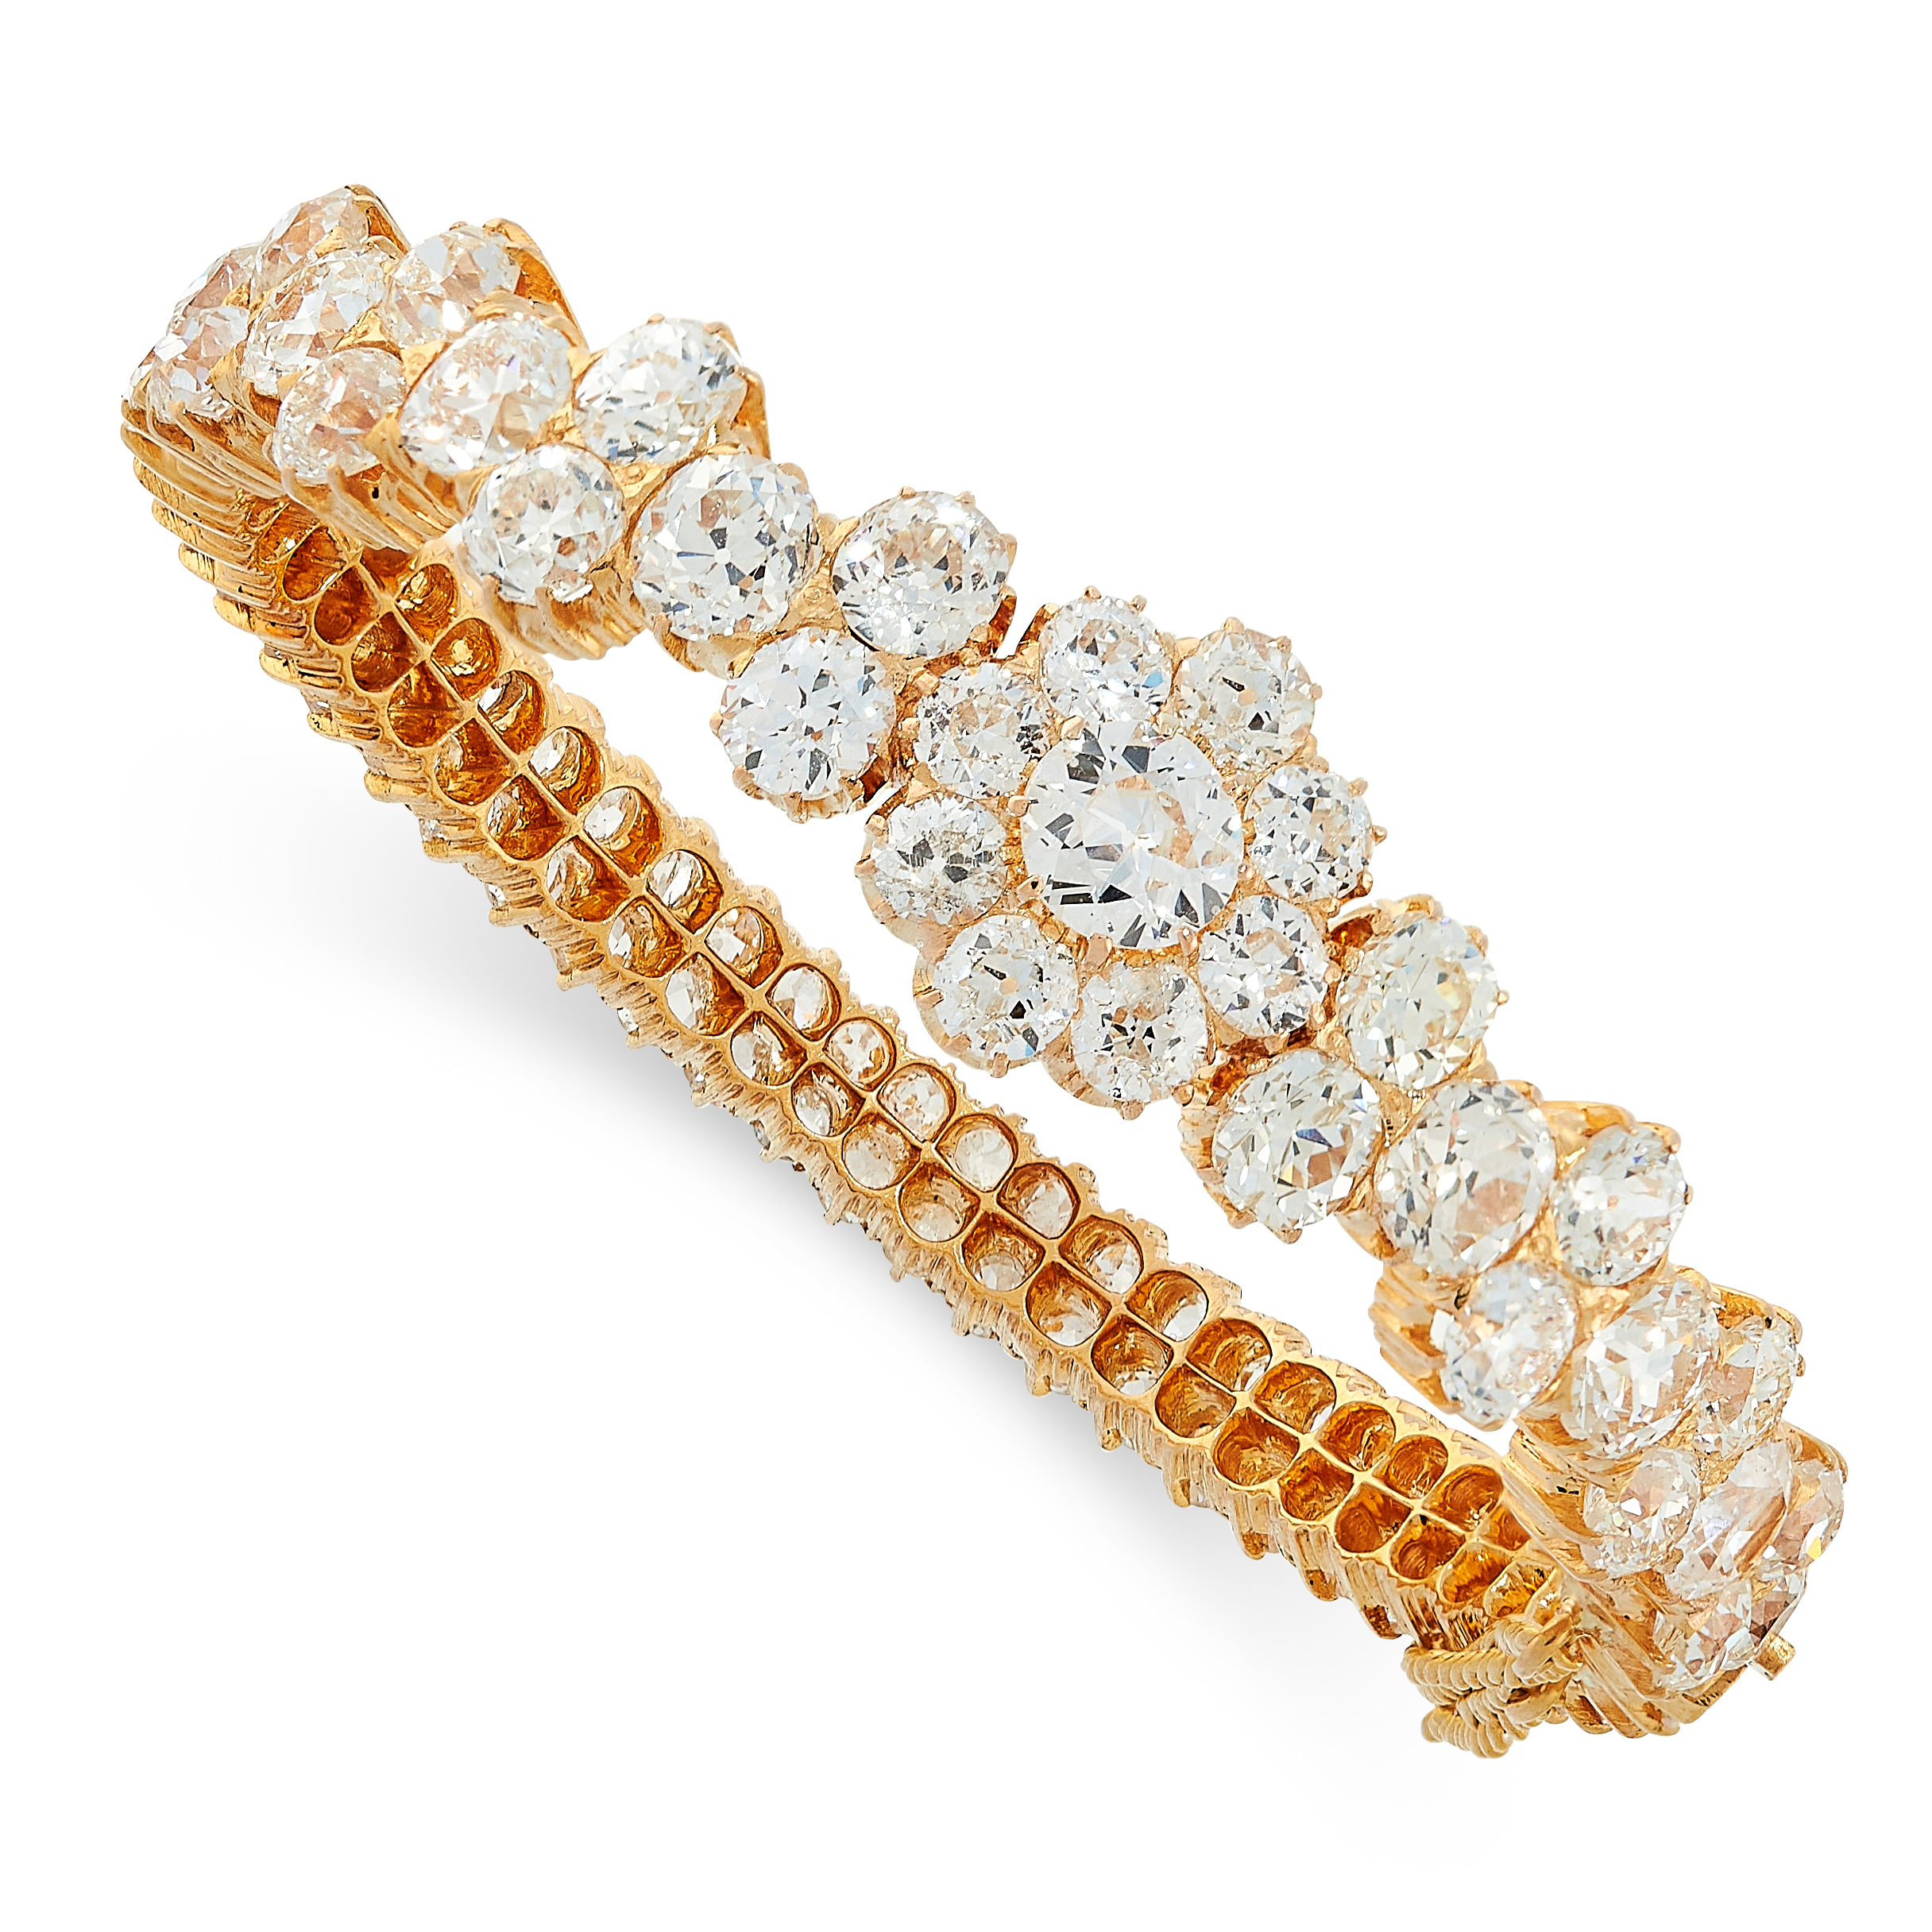 FINE DIAMOND BANGLE in yellow gold, set all around with clusters and rows of old cut diamonds, the